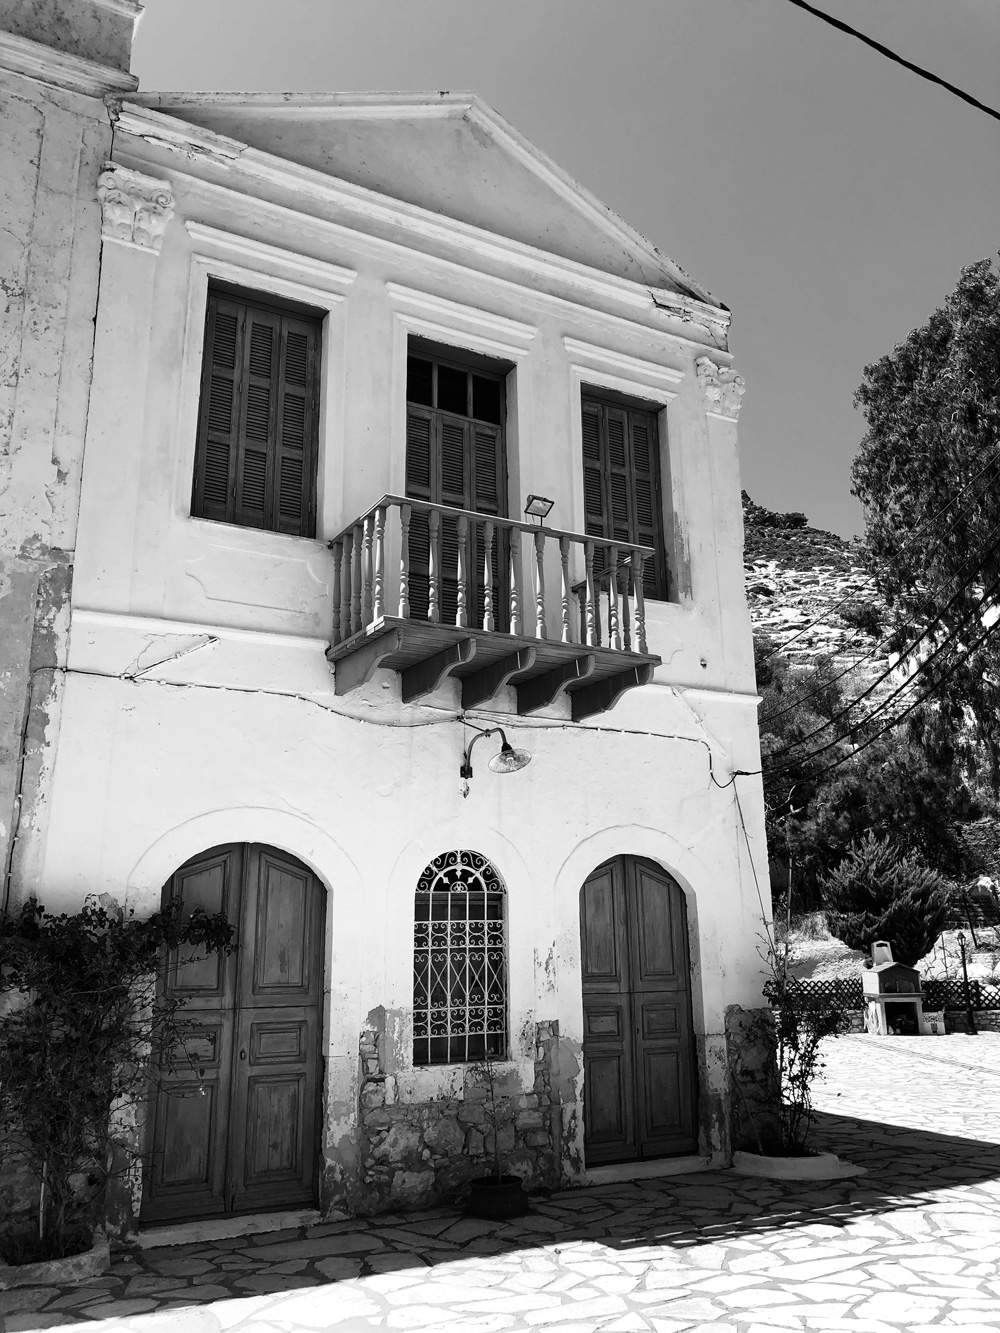 A black and white image of a Neoclassical Greek home with arched doorways and rectangle windows